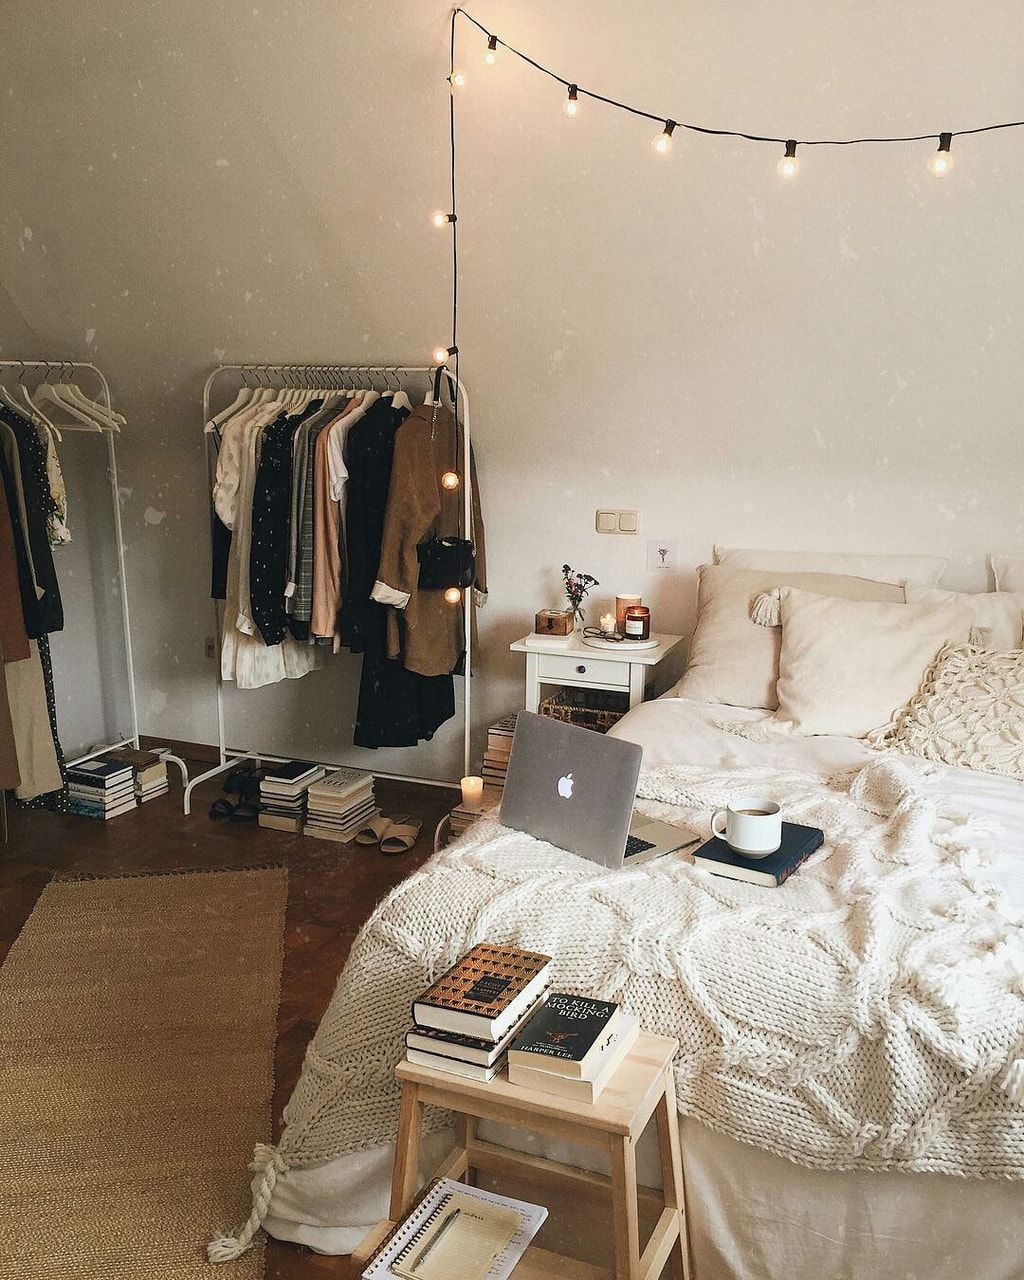 Bedroom discovered by skyfire♡ on We Heart It